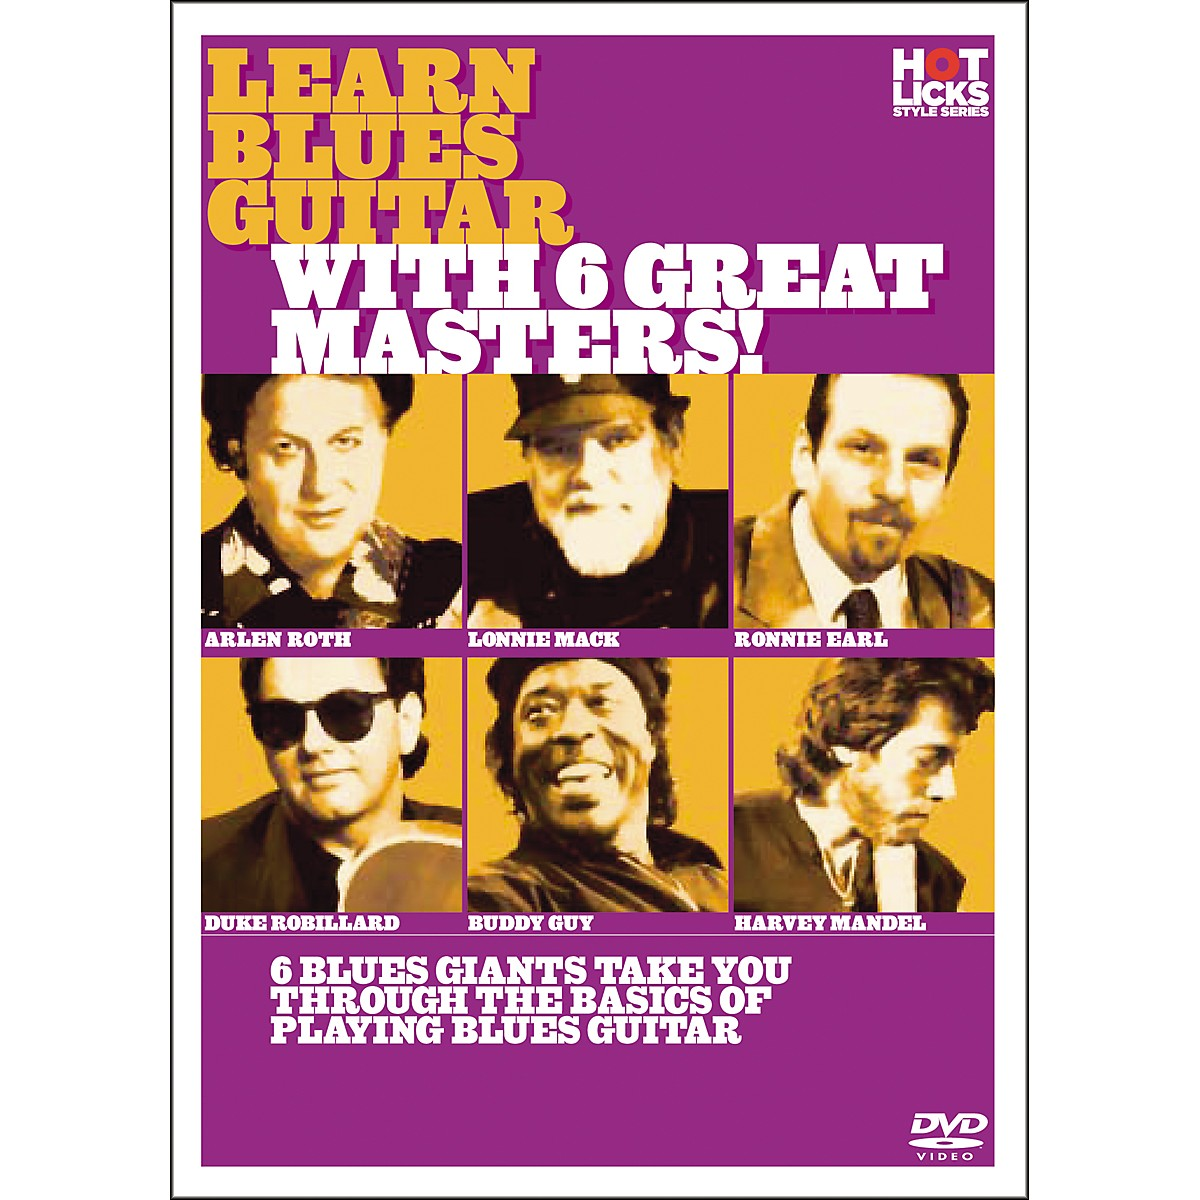 Hot Licks Learn Blues Guitar with 6 Great Masters DVD